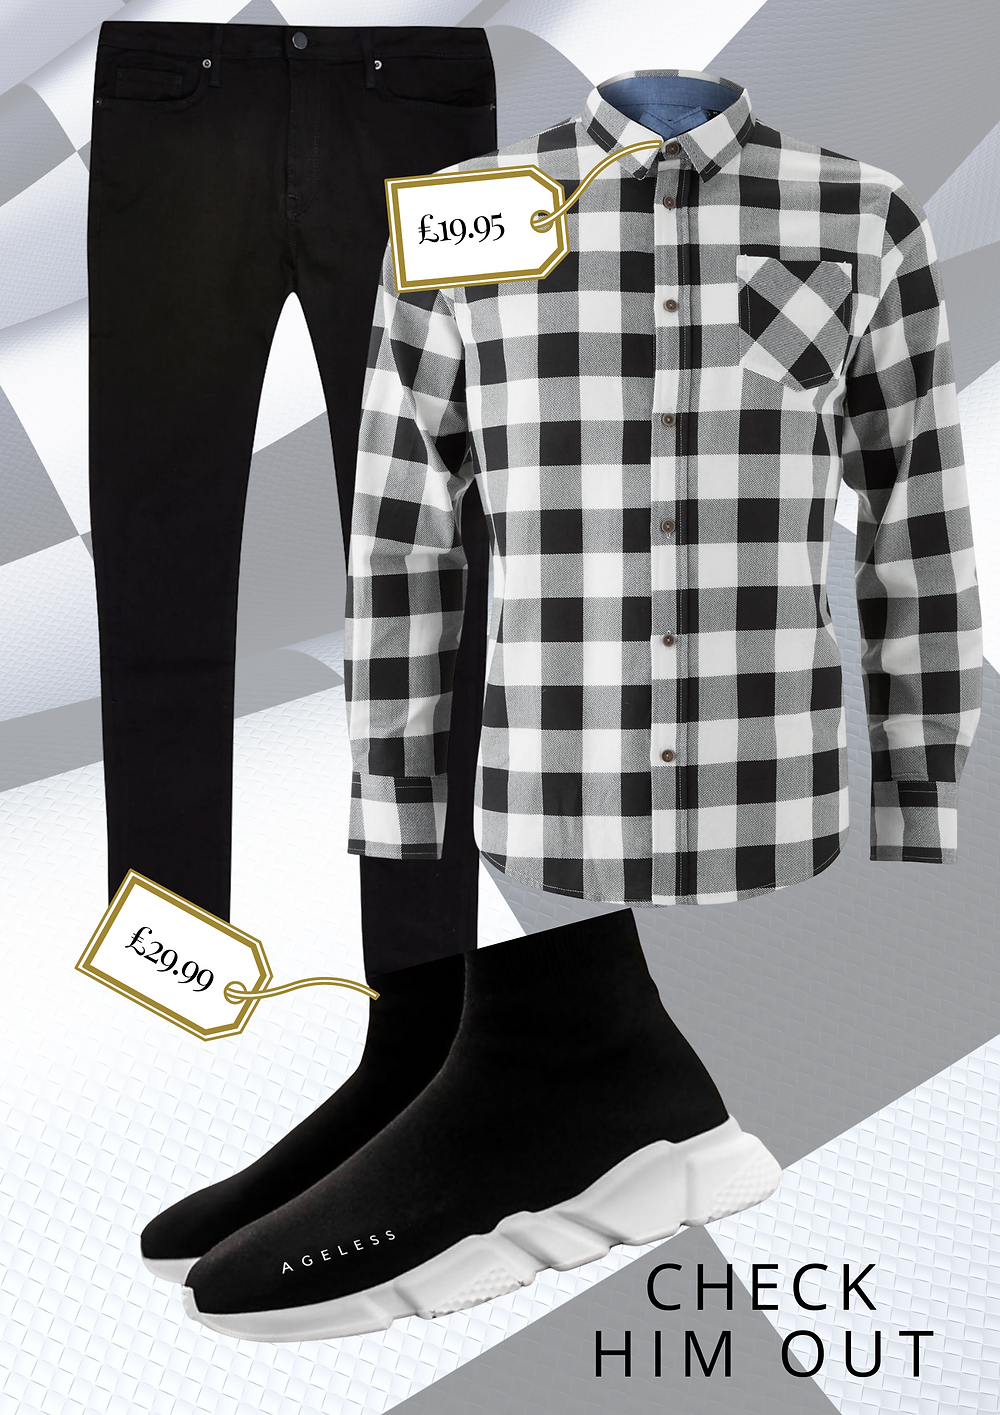 AGELESS MENS CHECKED SHIRTS